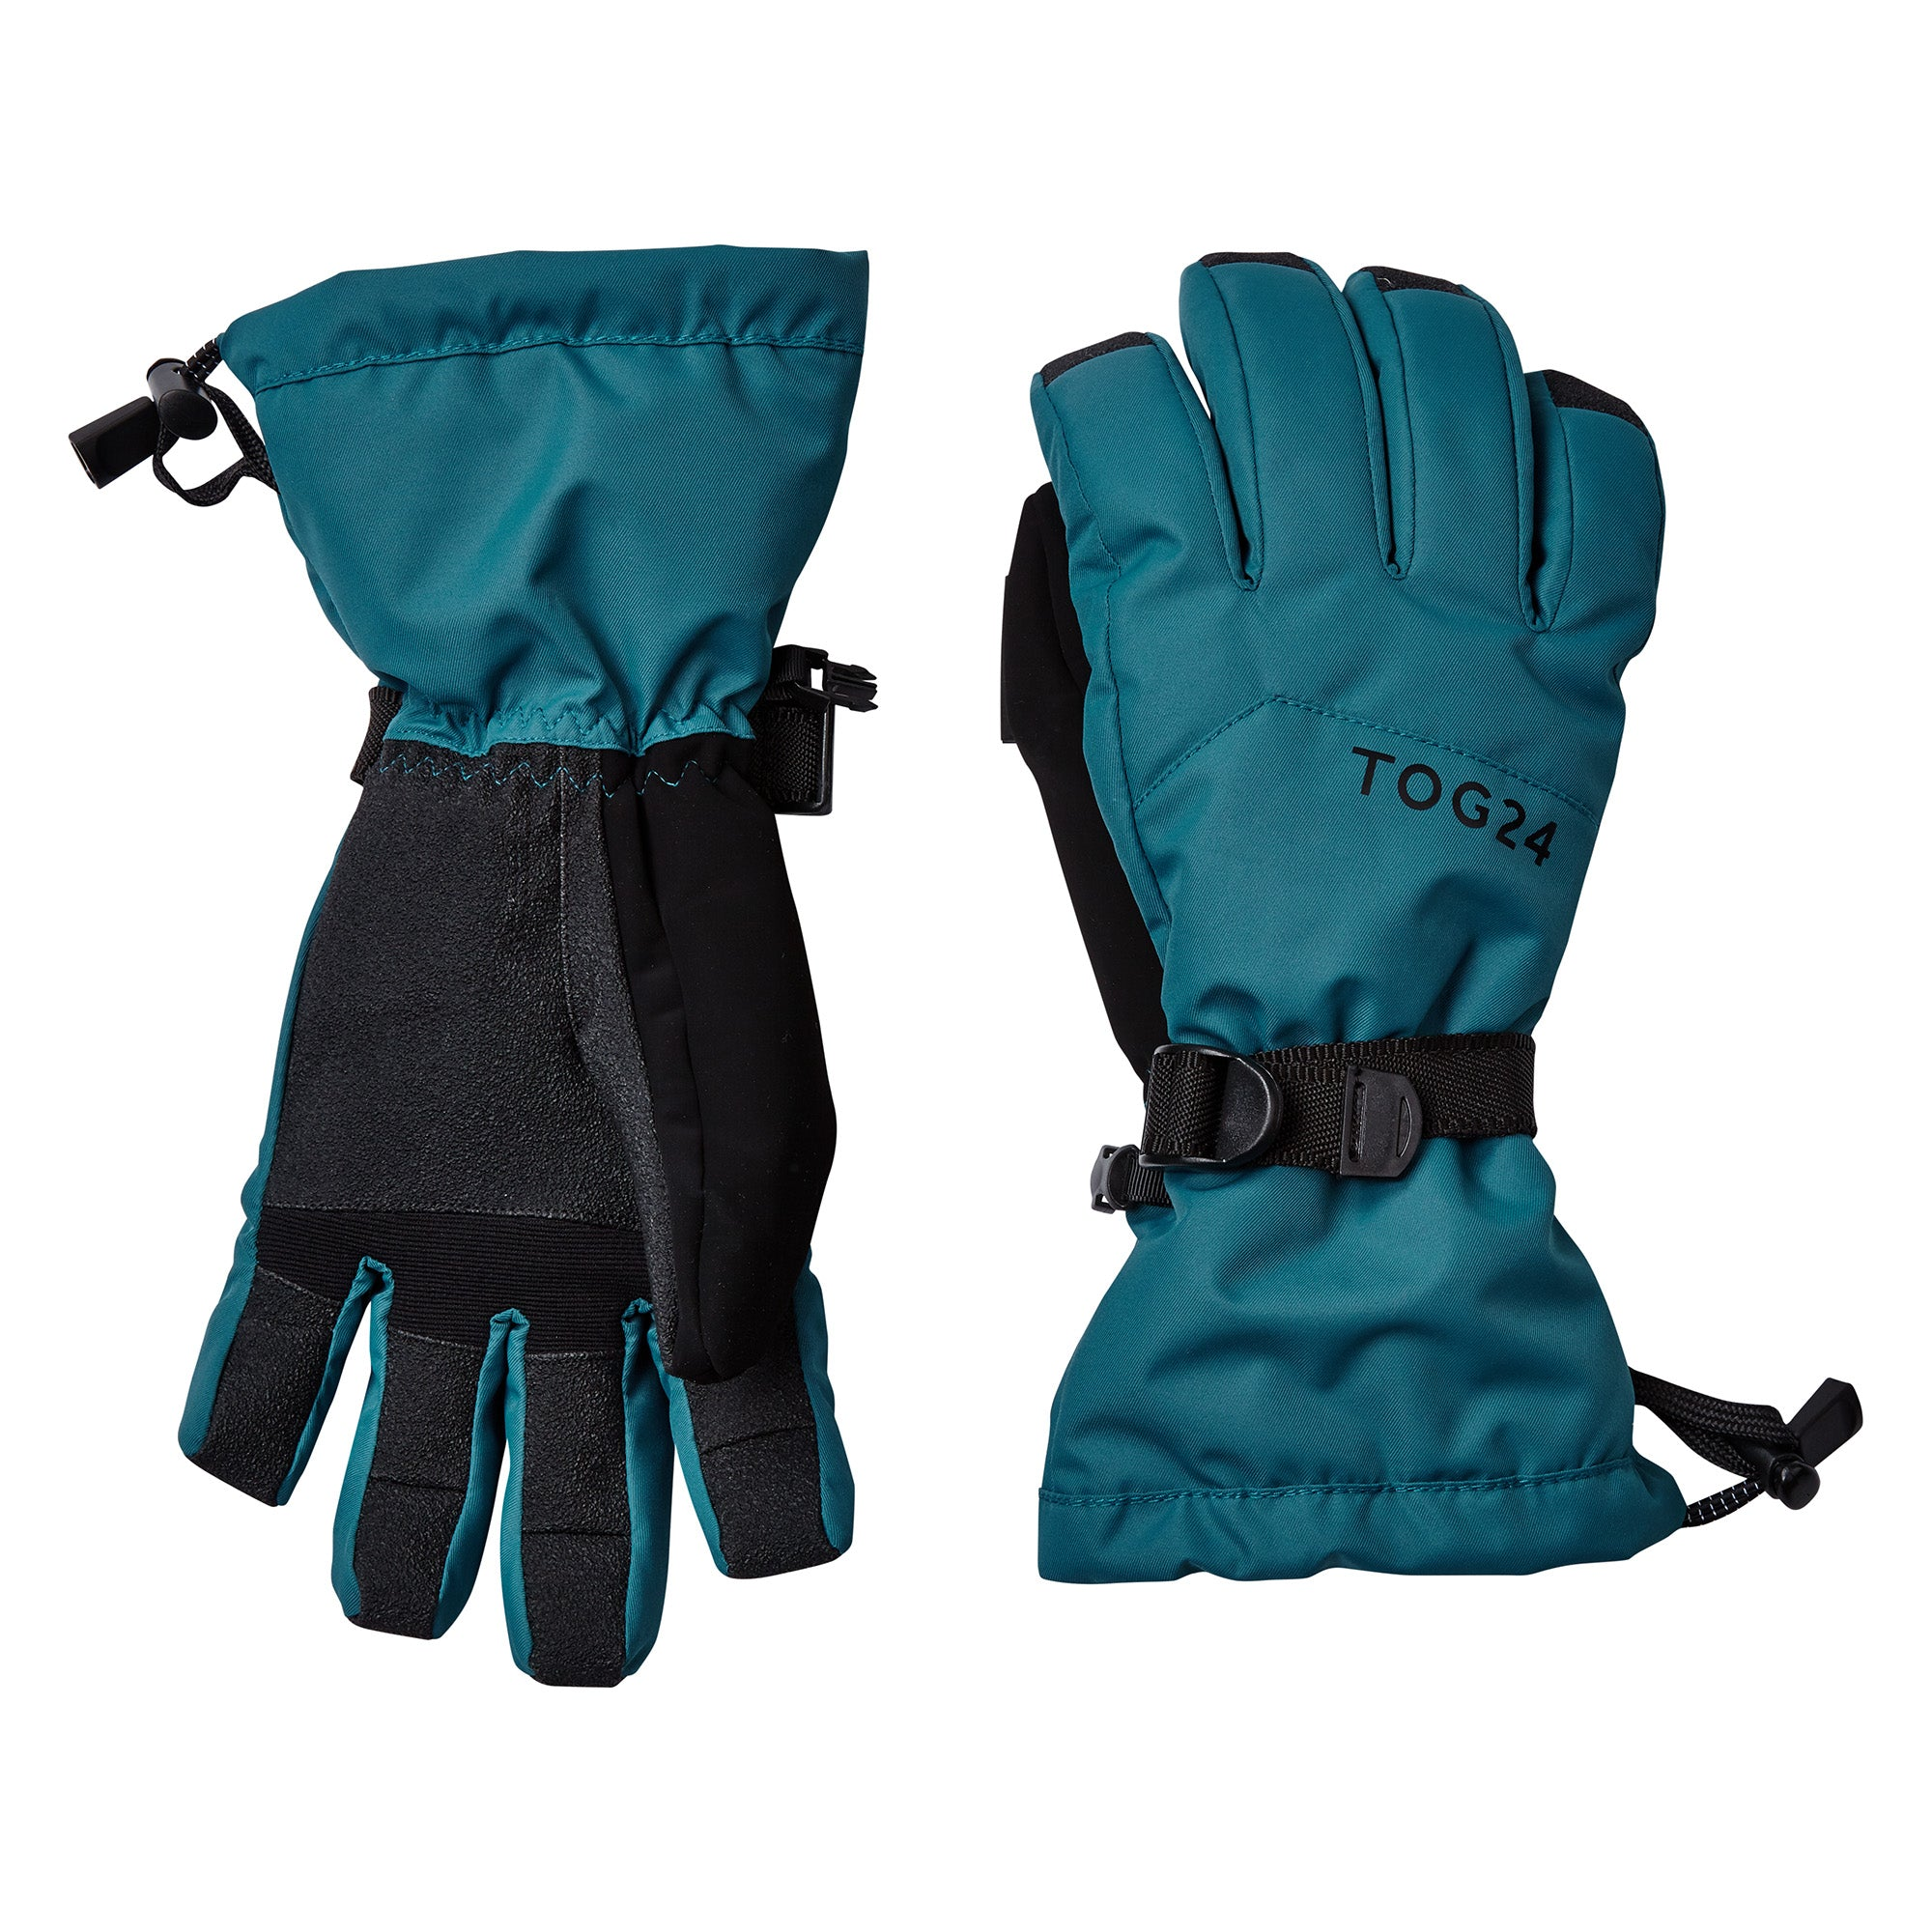 Lockton Waterproof Ski Gloves - Lagoon Blue